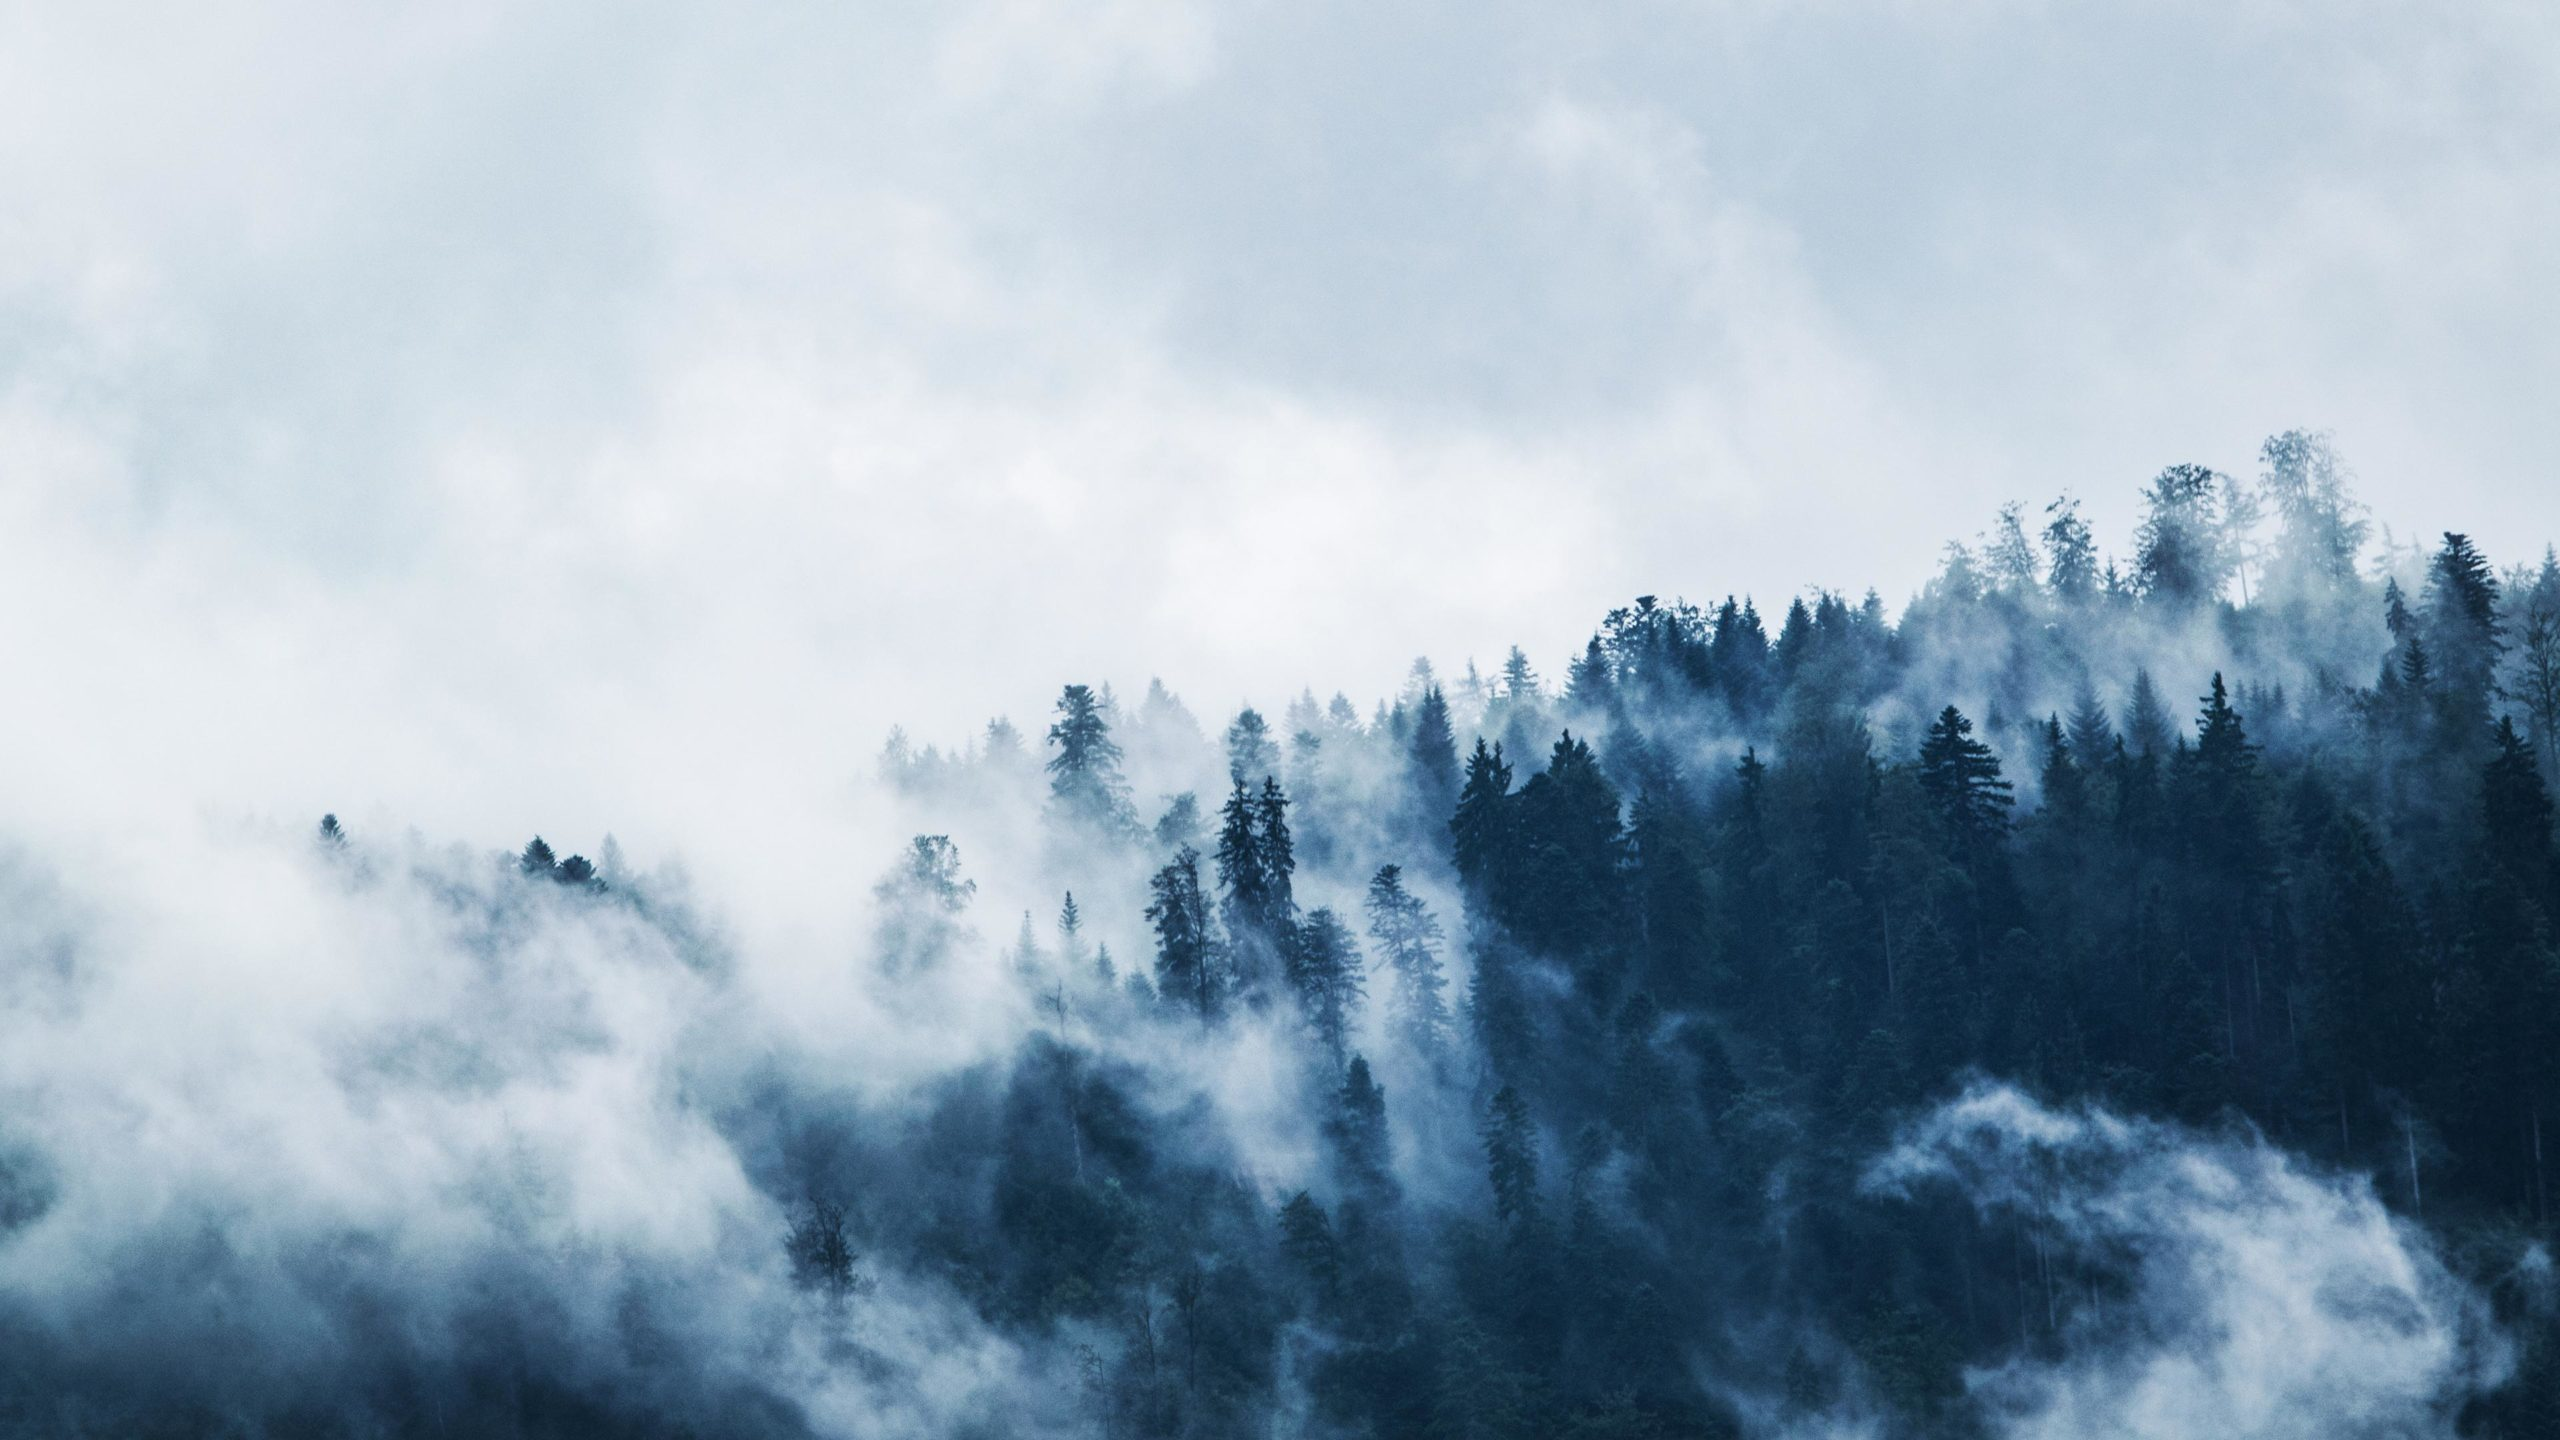 Download Green Pine Trees Covered With Fogs Under White Sky Wallpaper